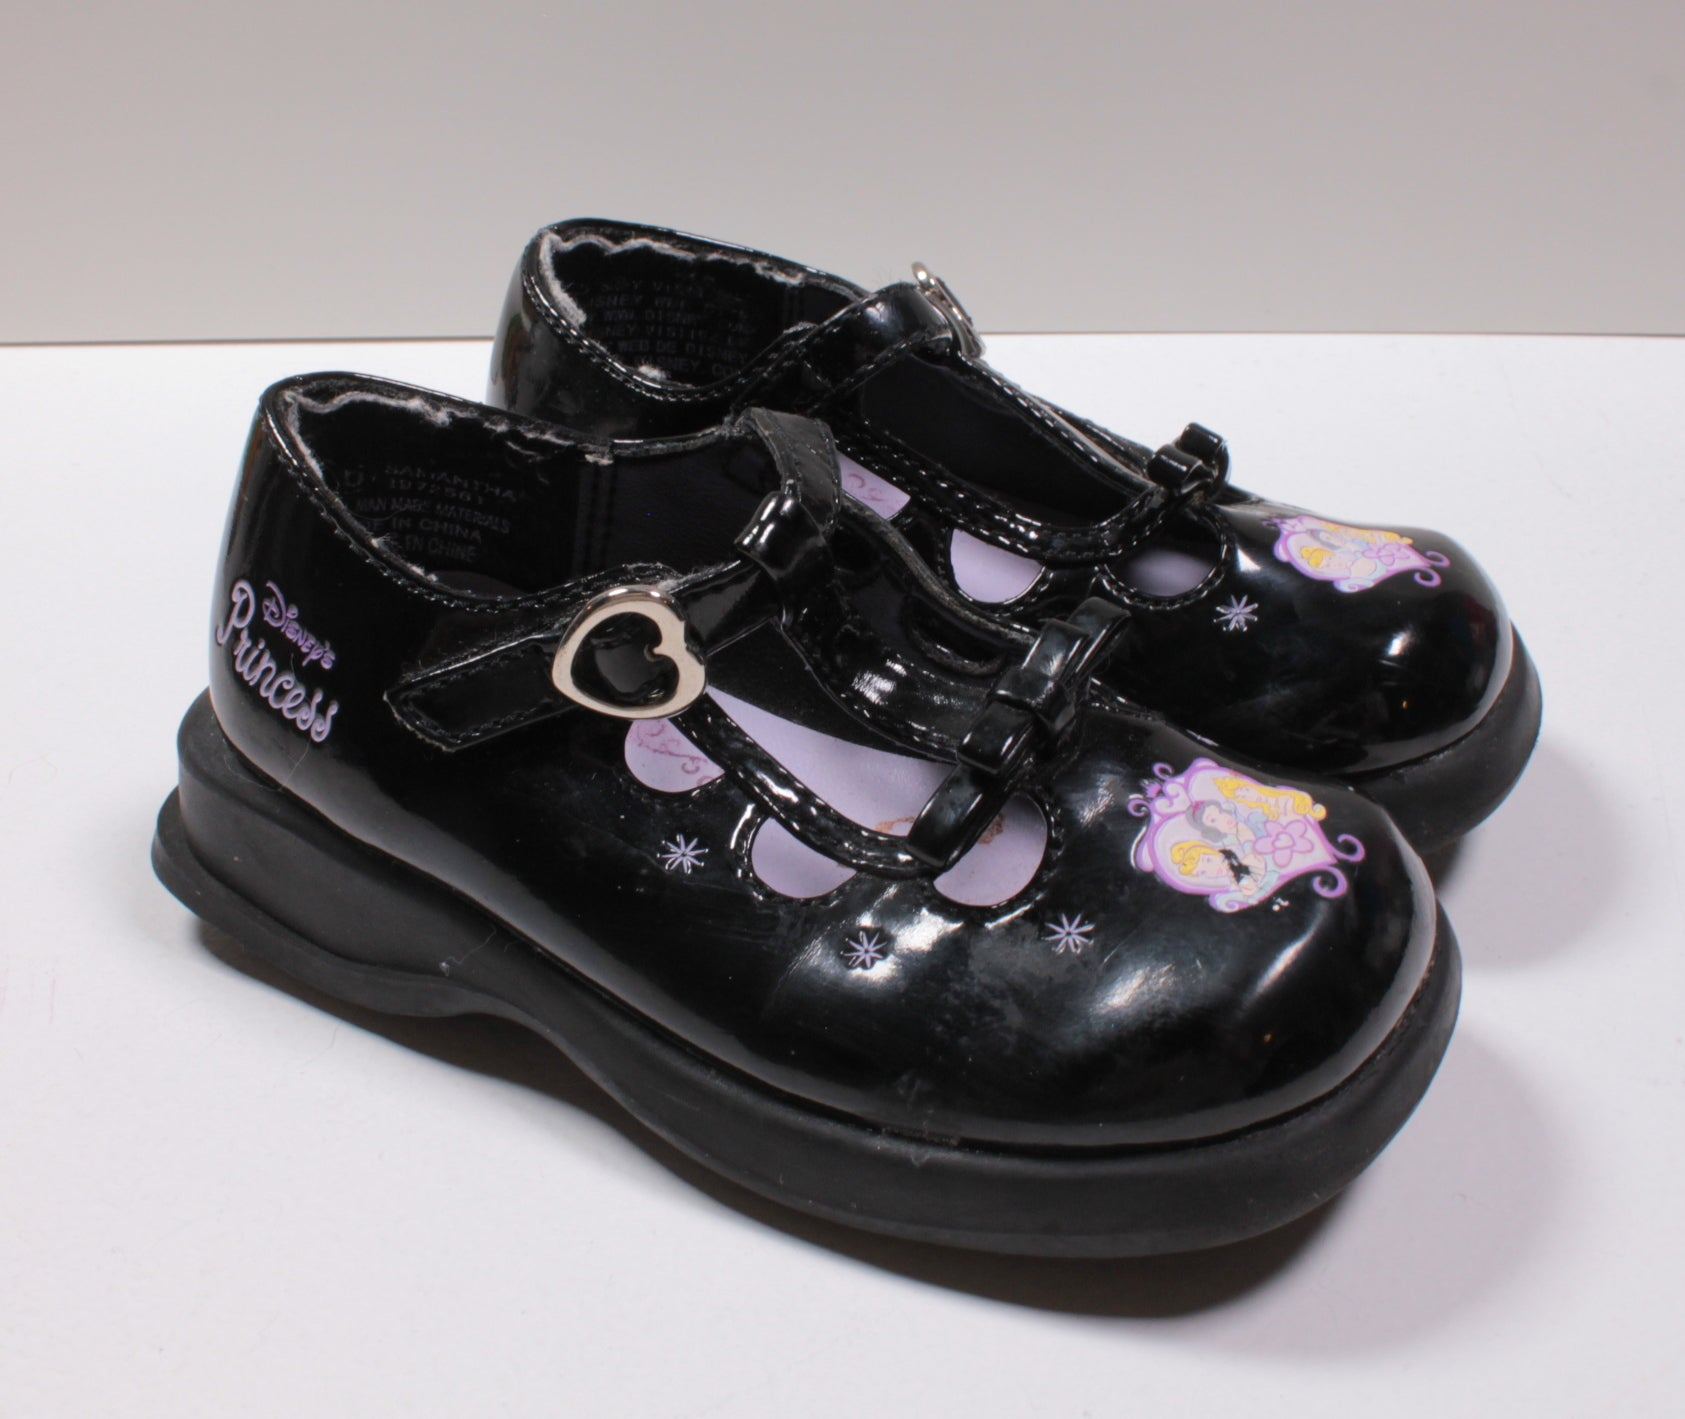 DISNEY PRINCESS SHINY BLACK SHOE EIZE 6 VGUC/EUC